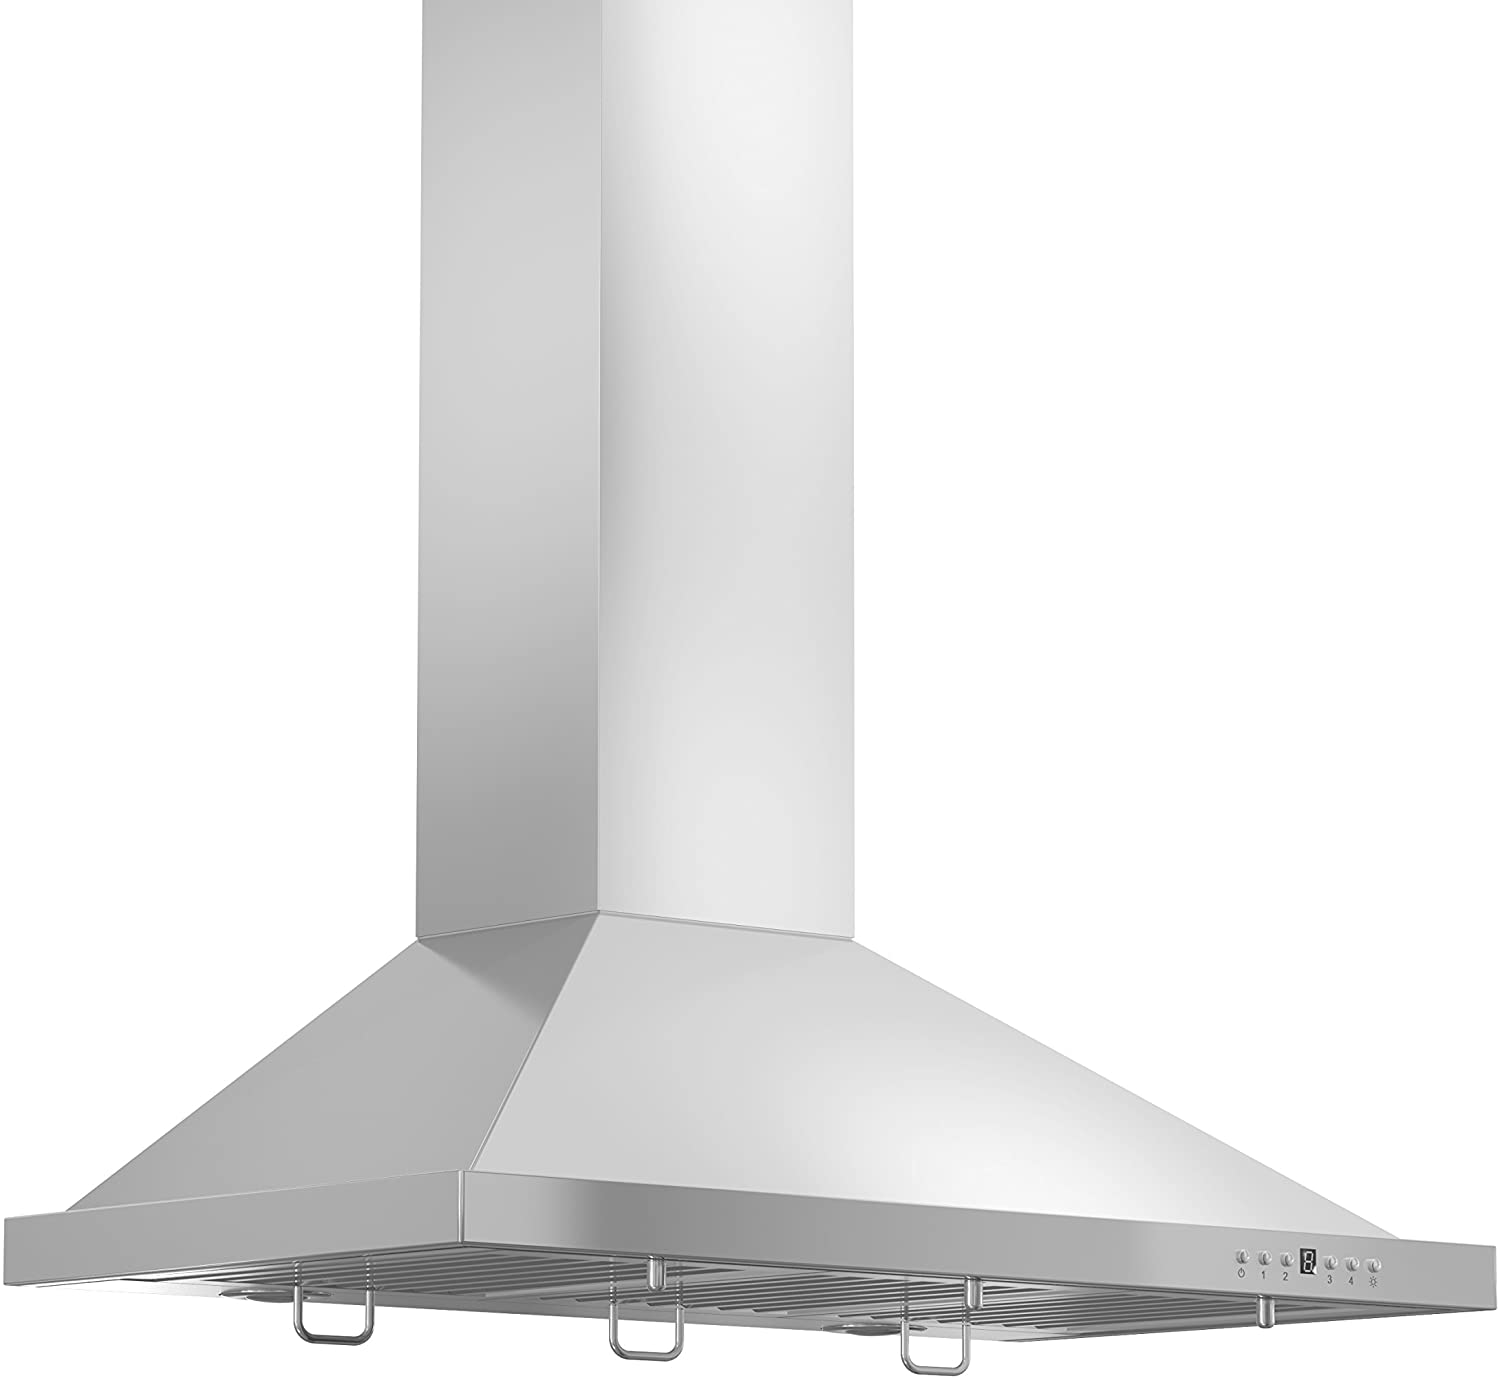 ZLINE 30 in. Wall Mount Range Hood in Stainless Steel with Crown Molding (KBCRN-30)